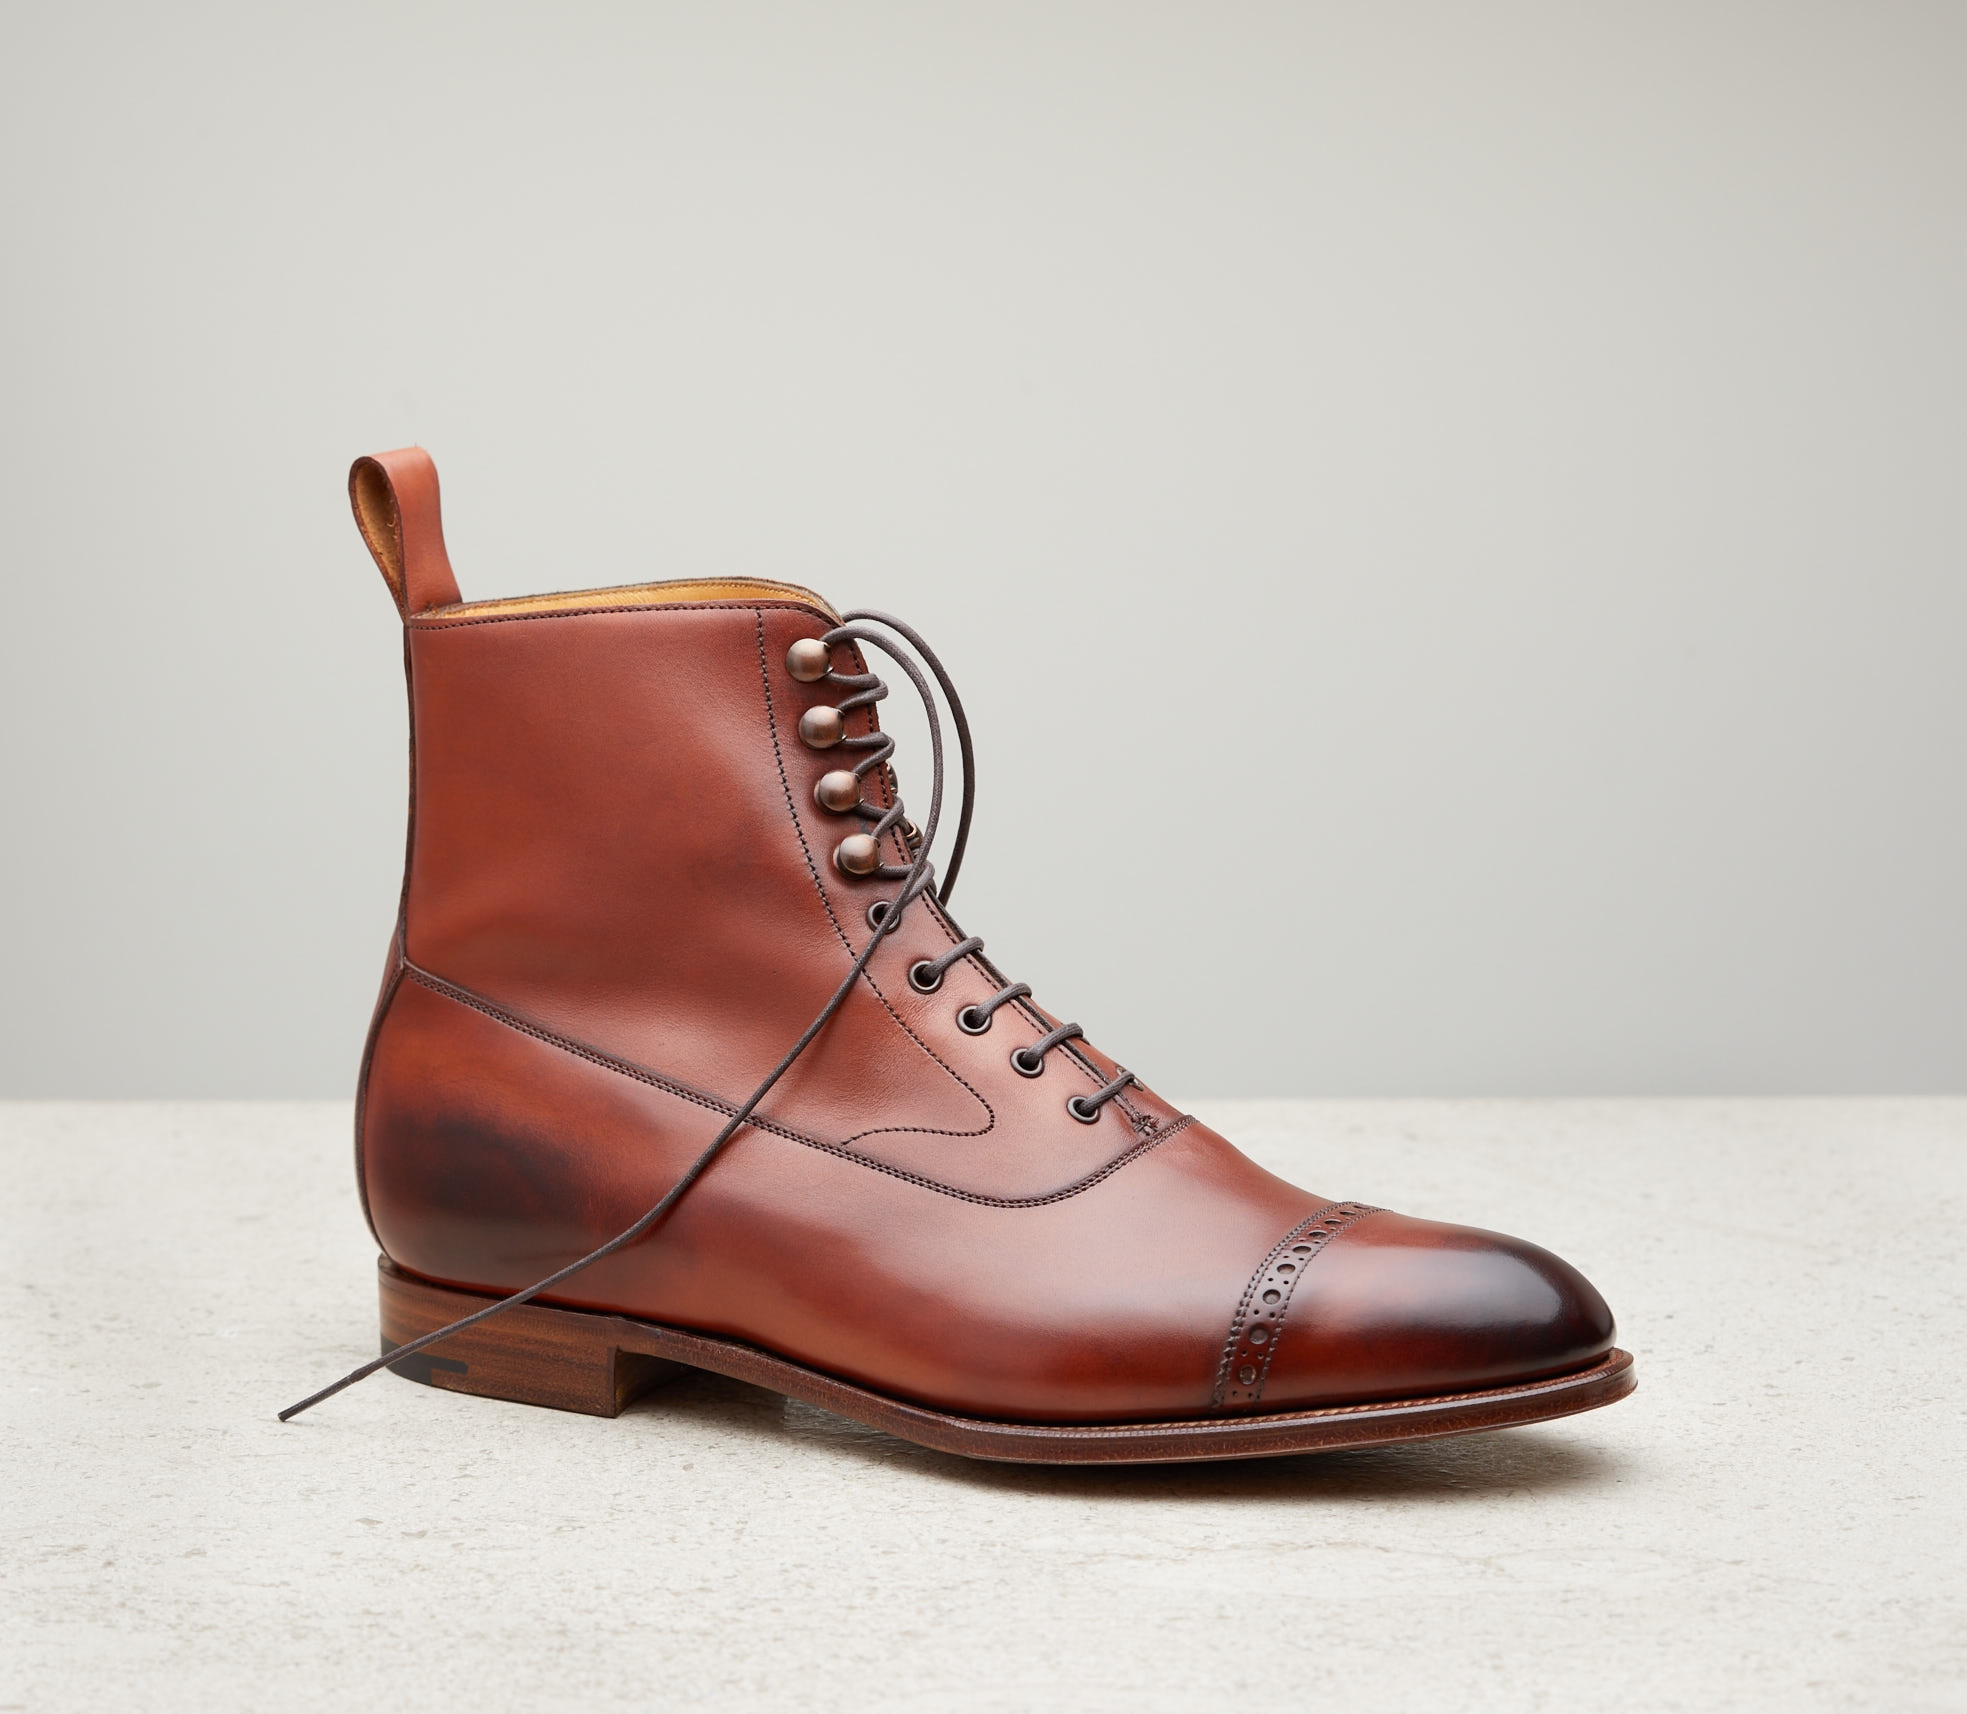 What Is The Substitute For Leather In Shoes